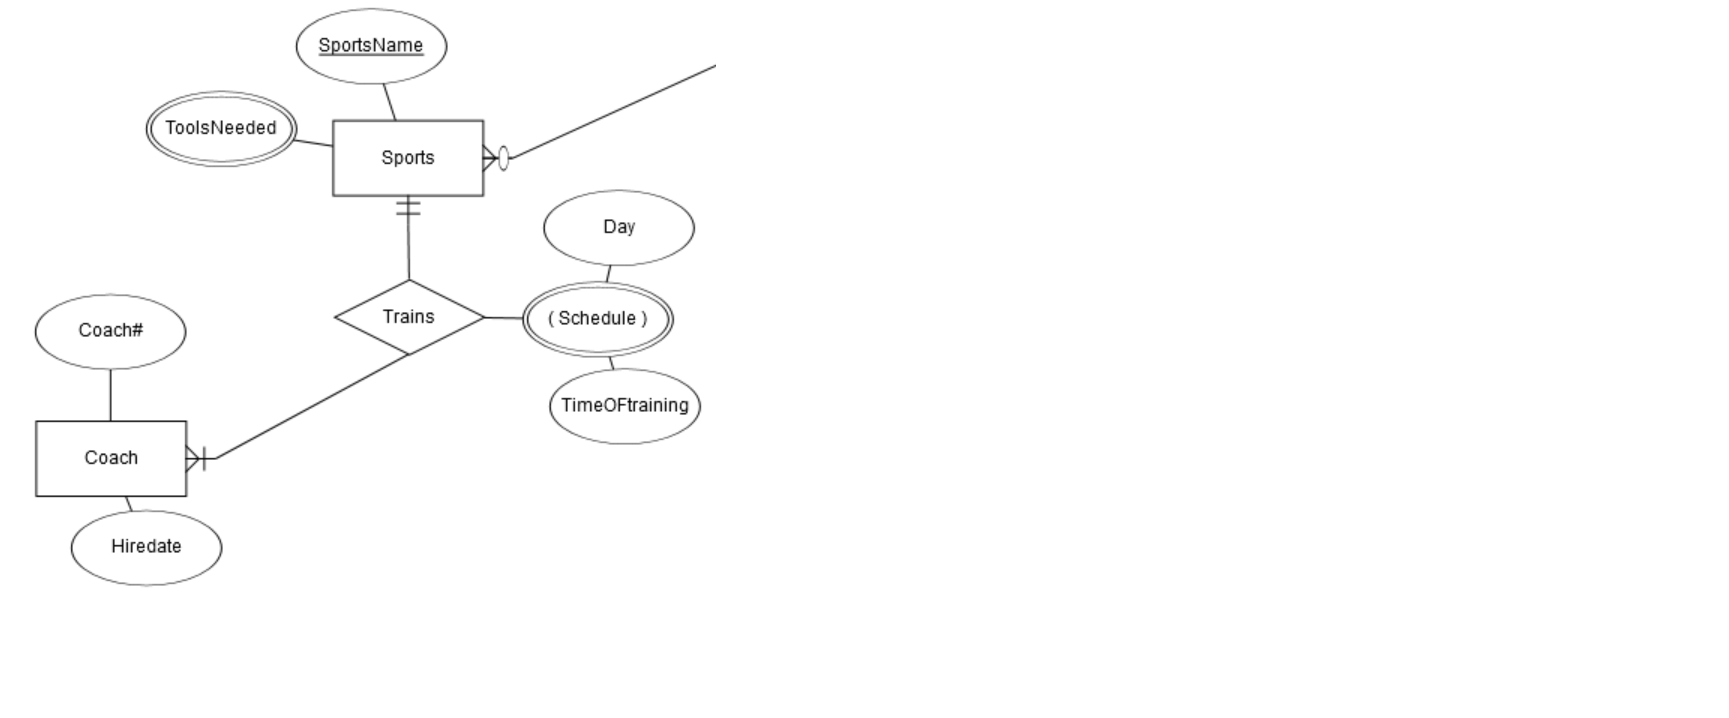 How To Convert This Er Diagram To Relational Schema - Stack